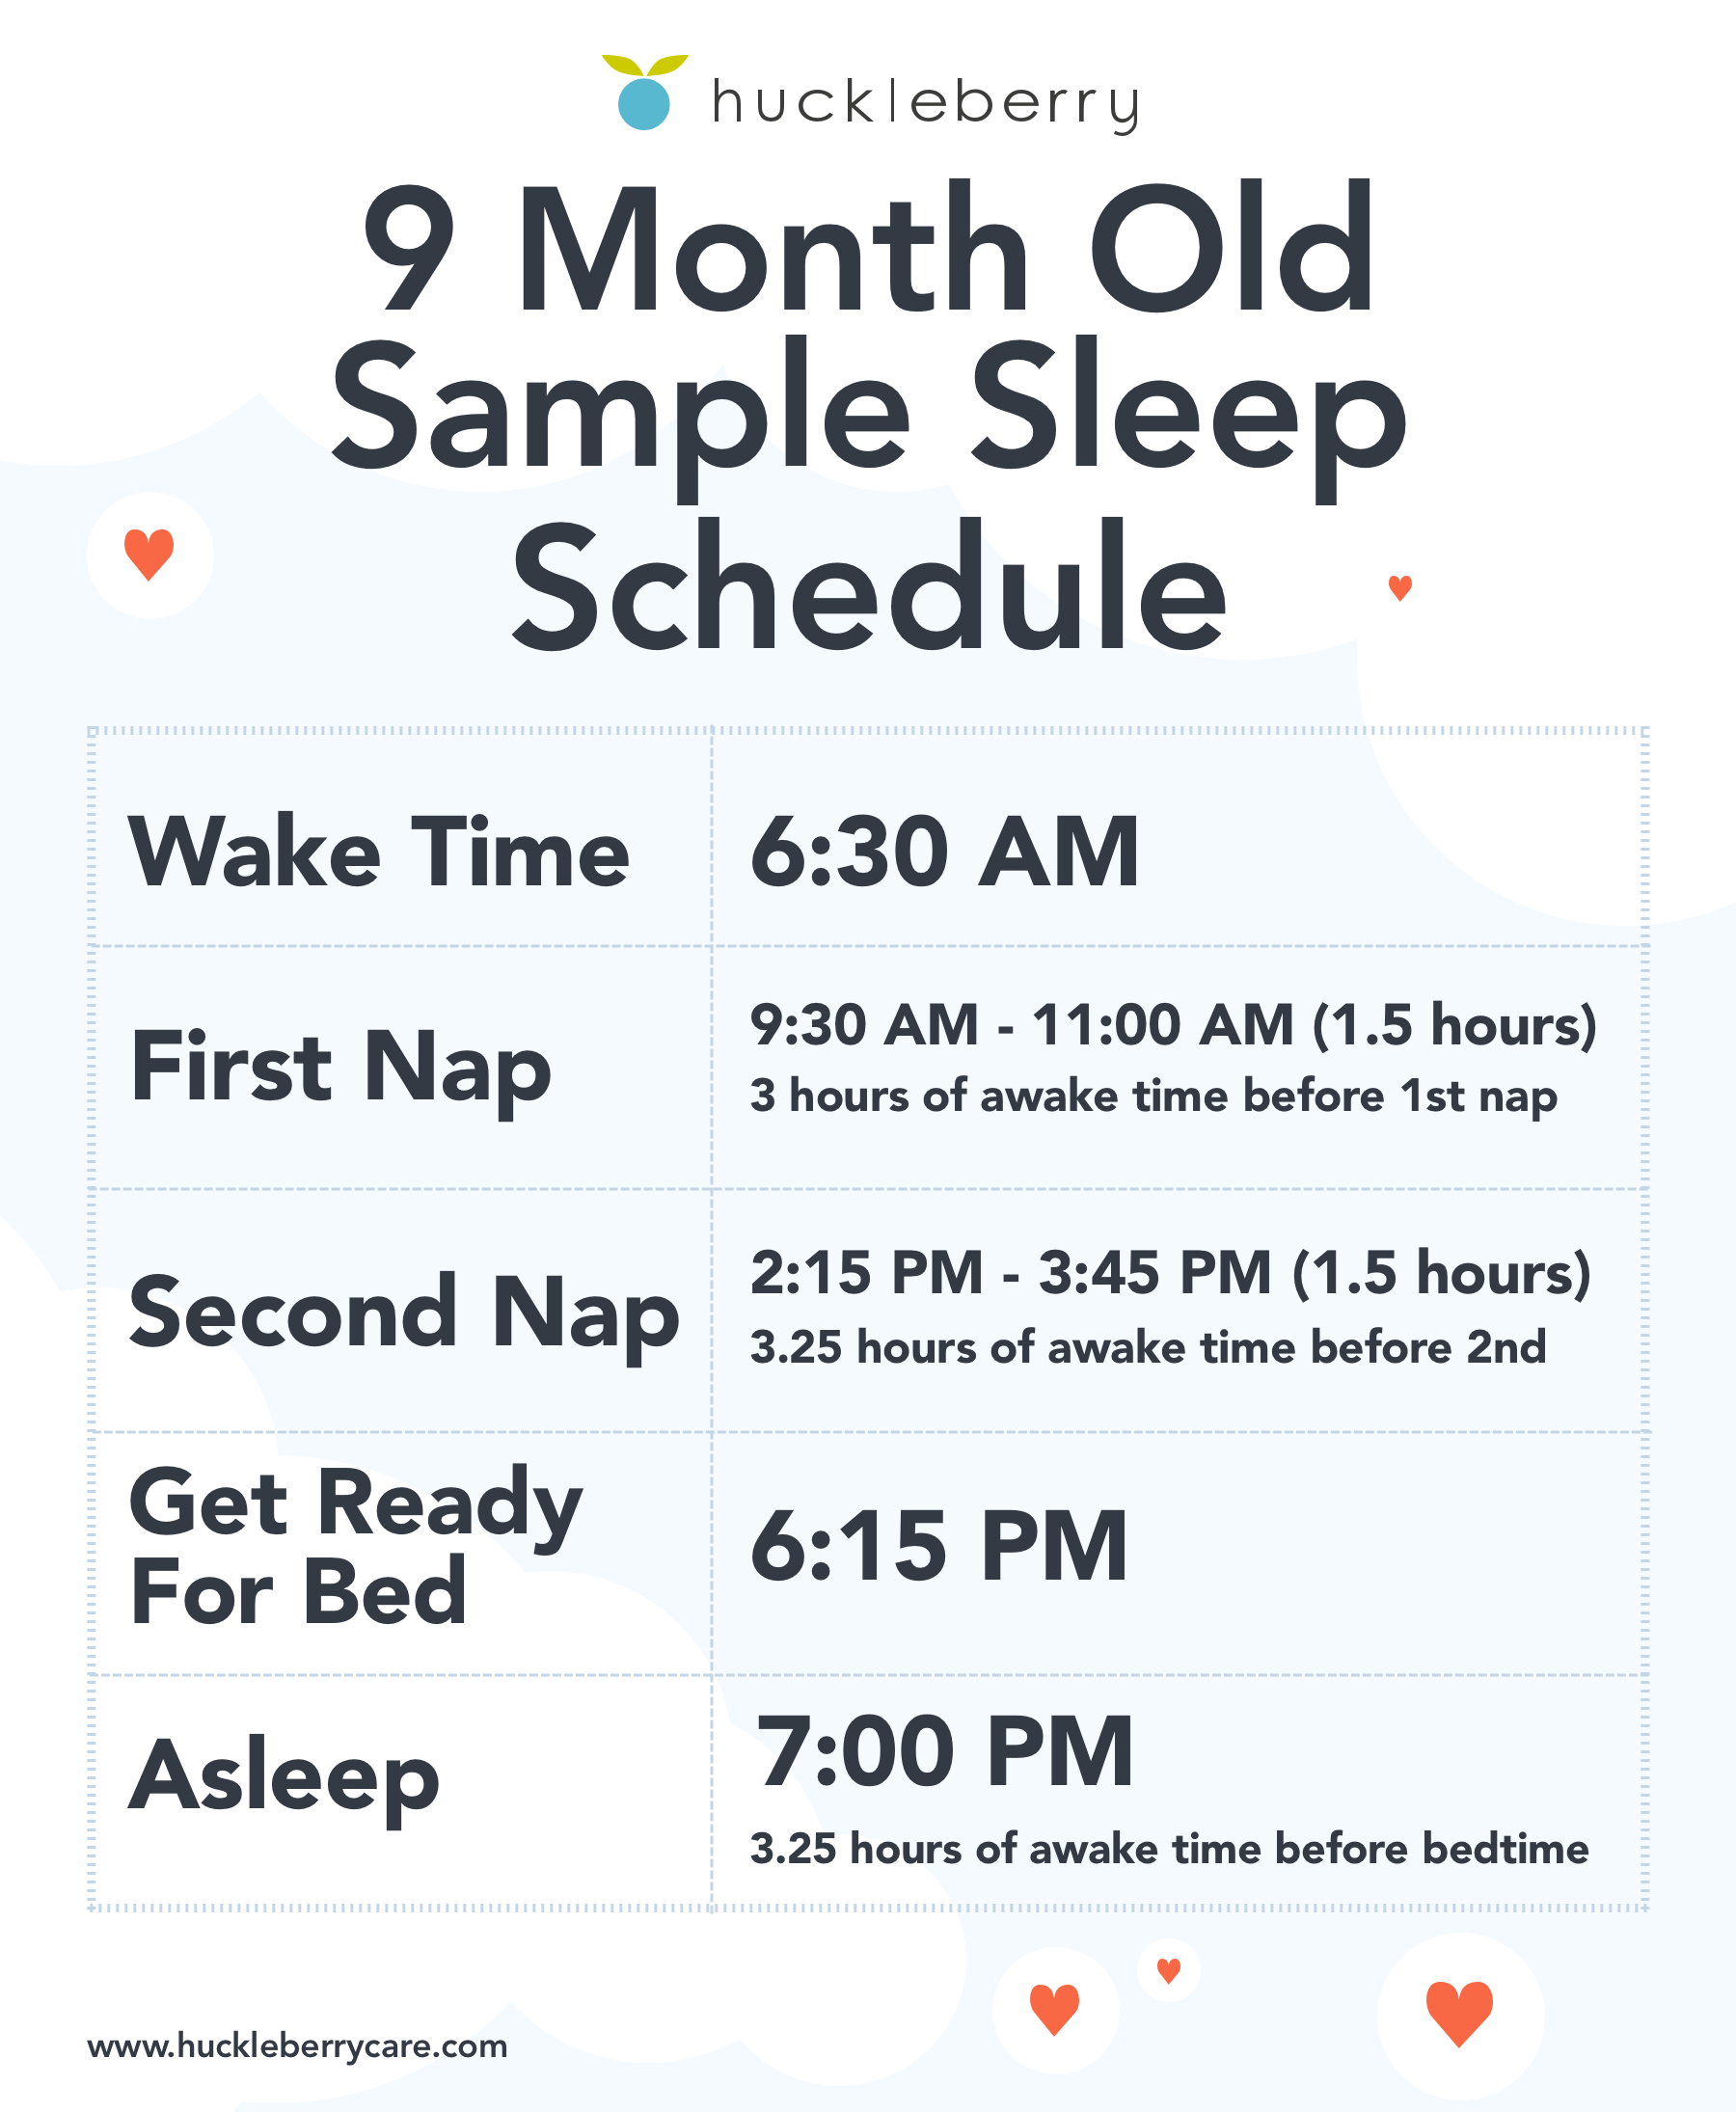 Huckleberry 9 Month Old Sample Sleep Schedule